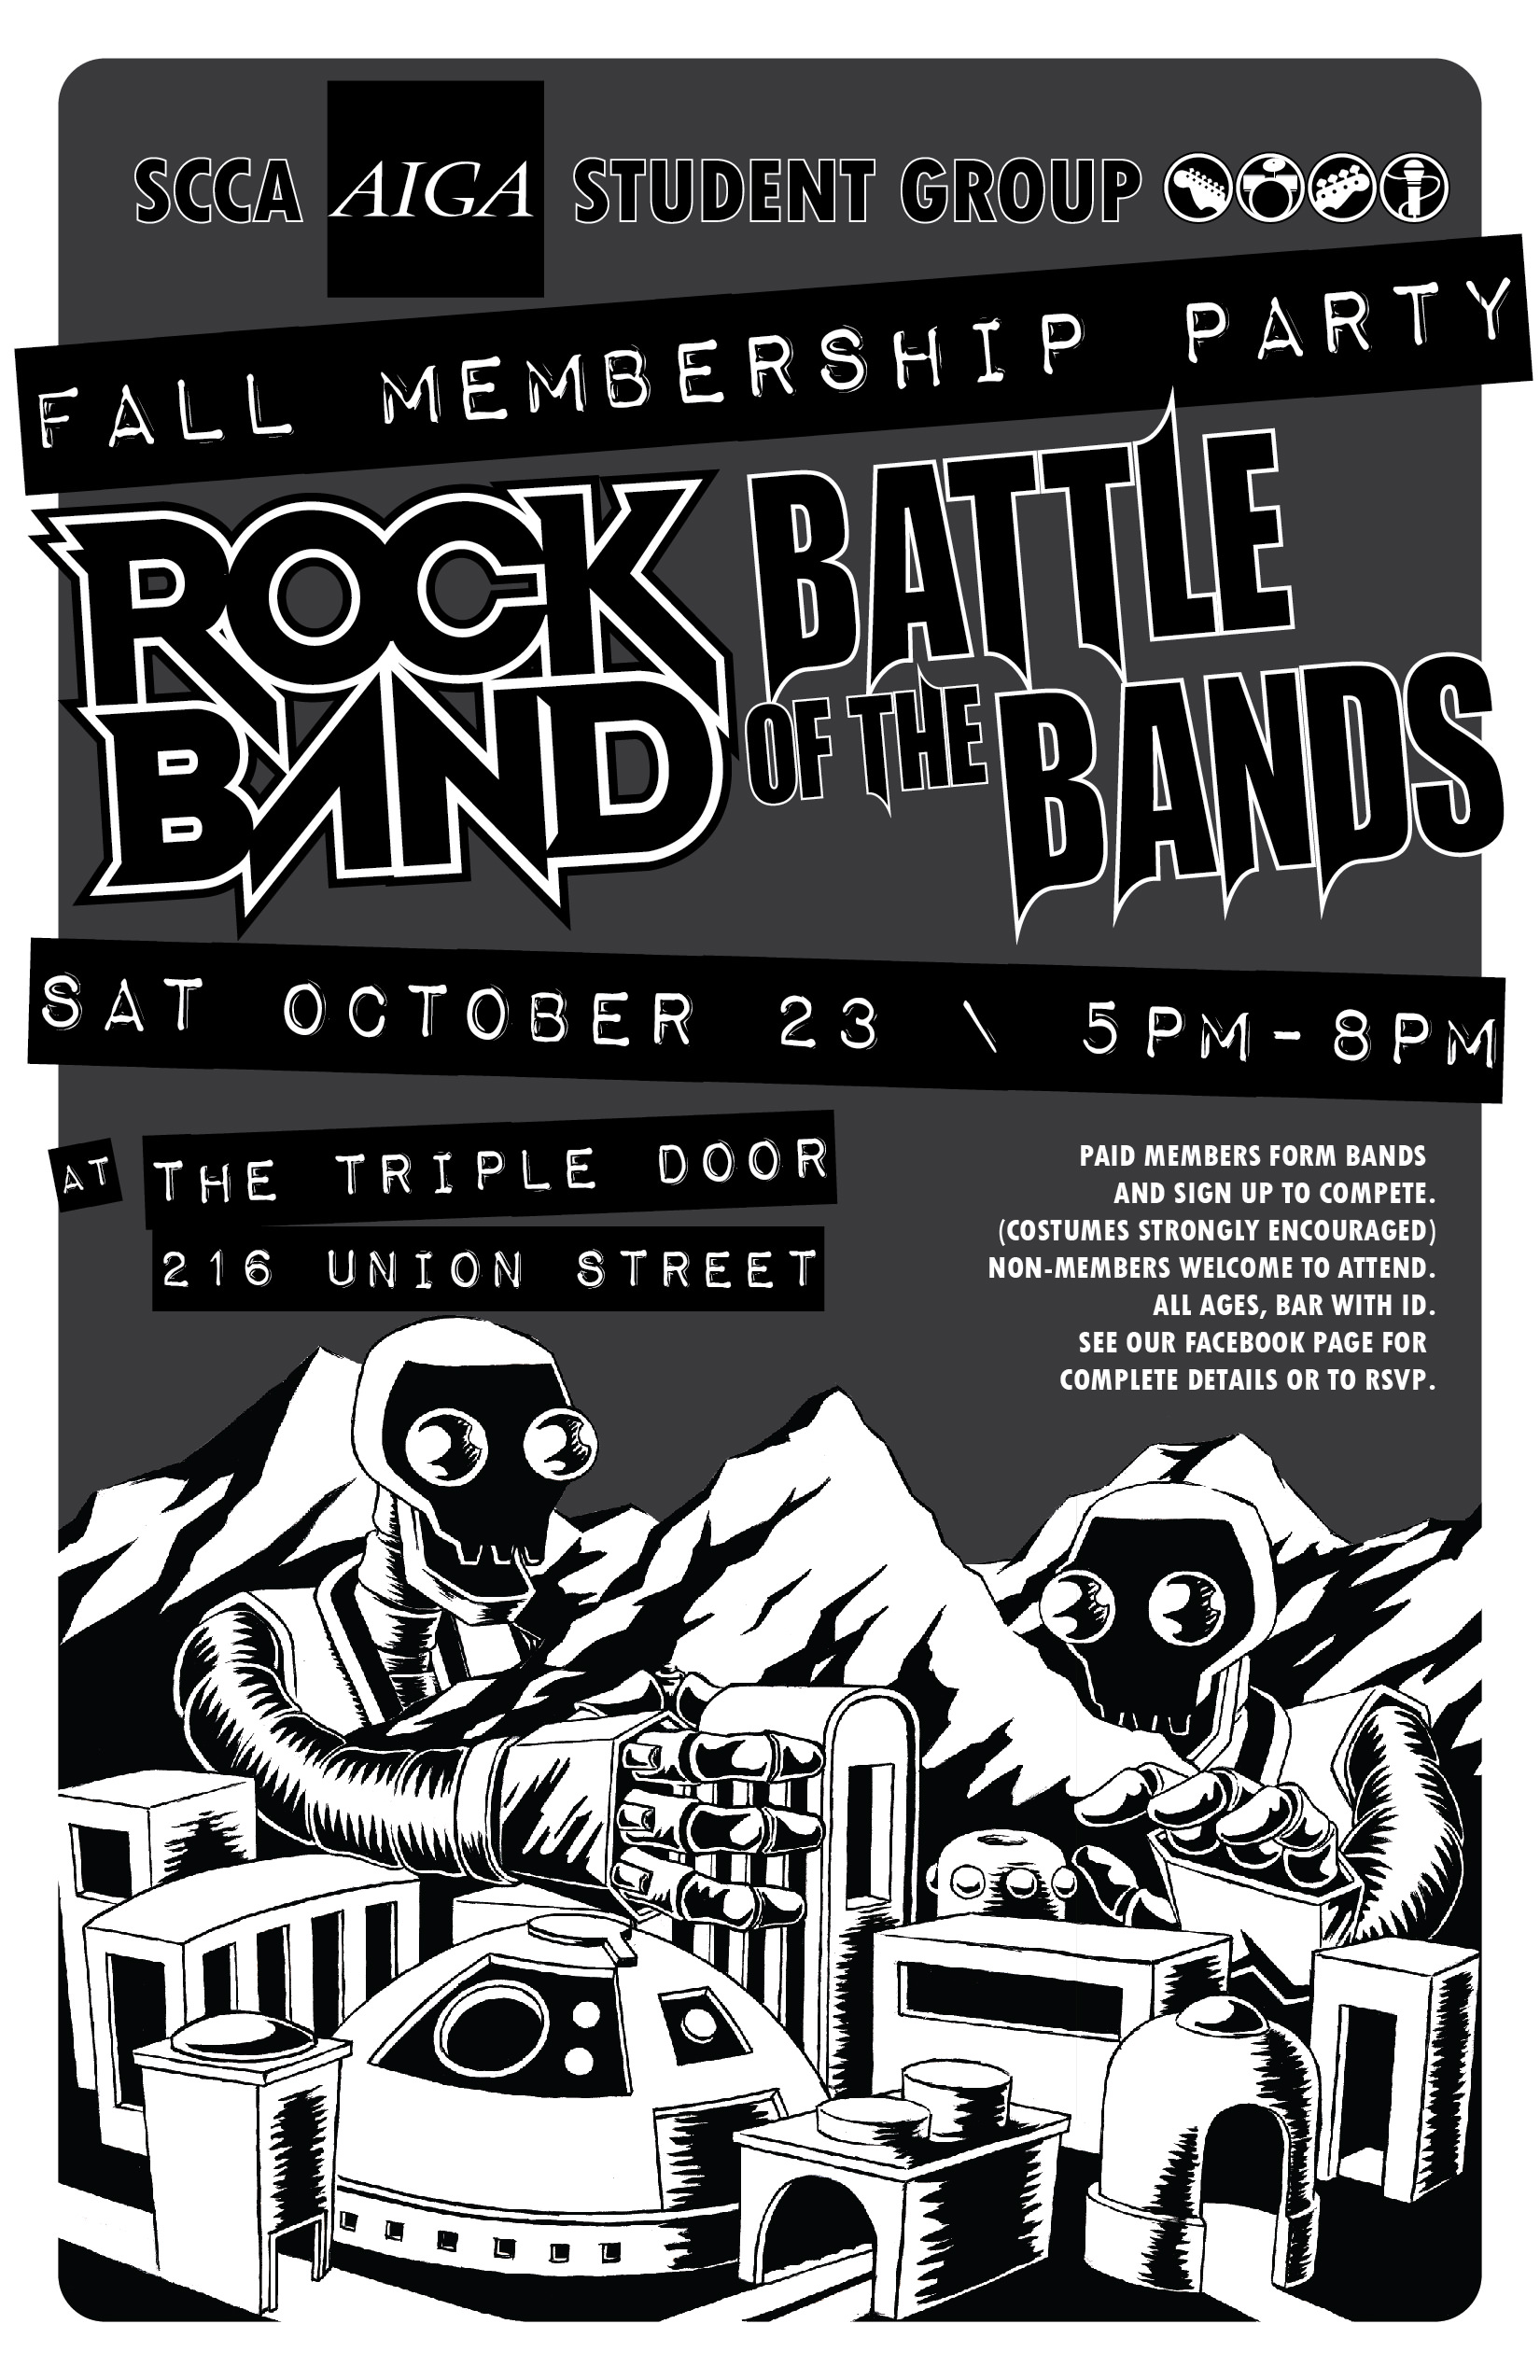 Poster a Week Free Posters Online - This Week: Rock Band / Battle of the Bands, Event Poster